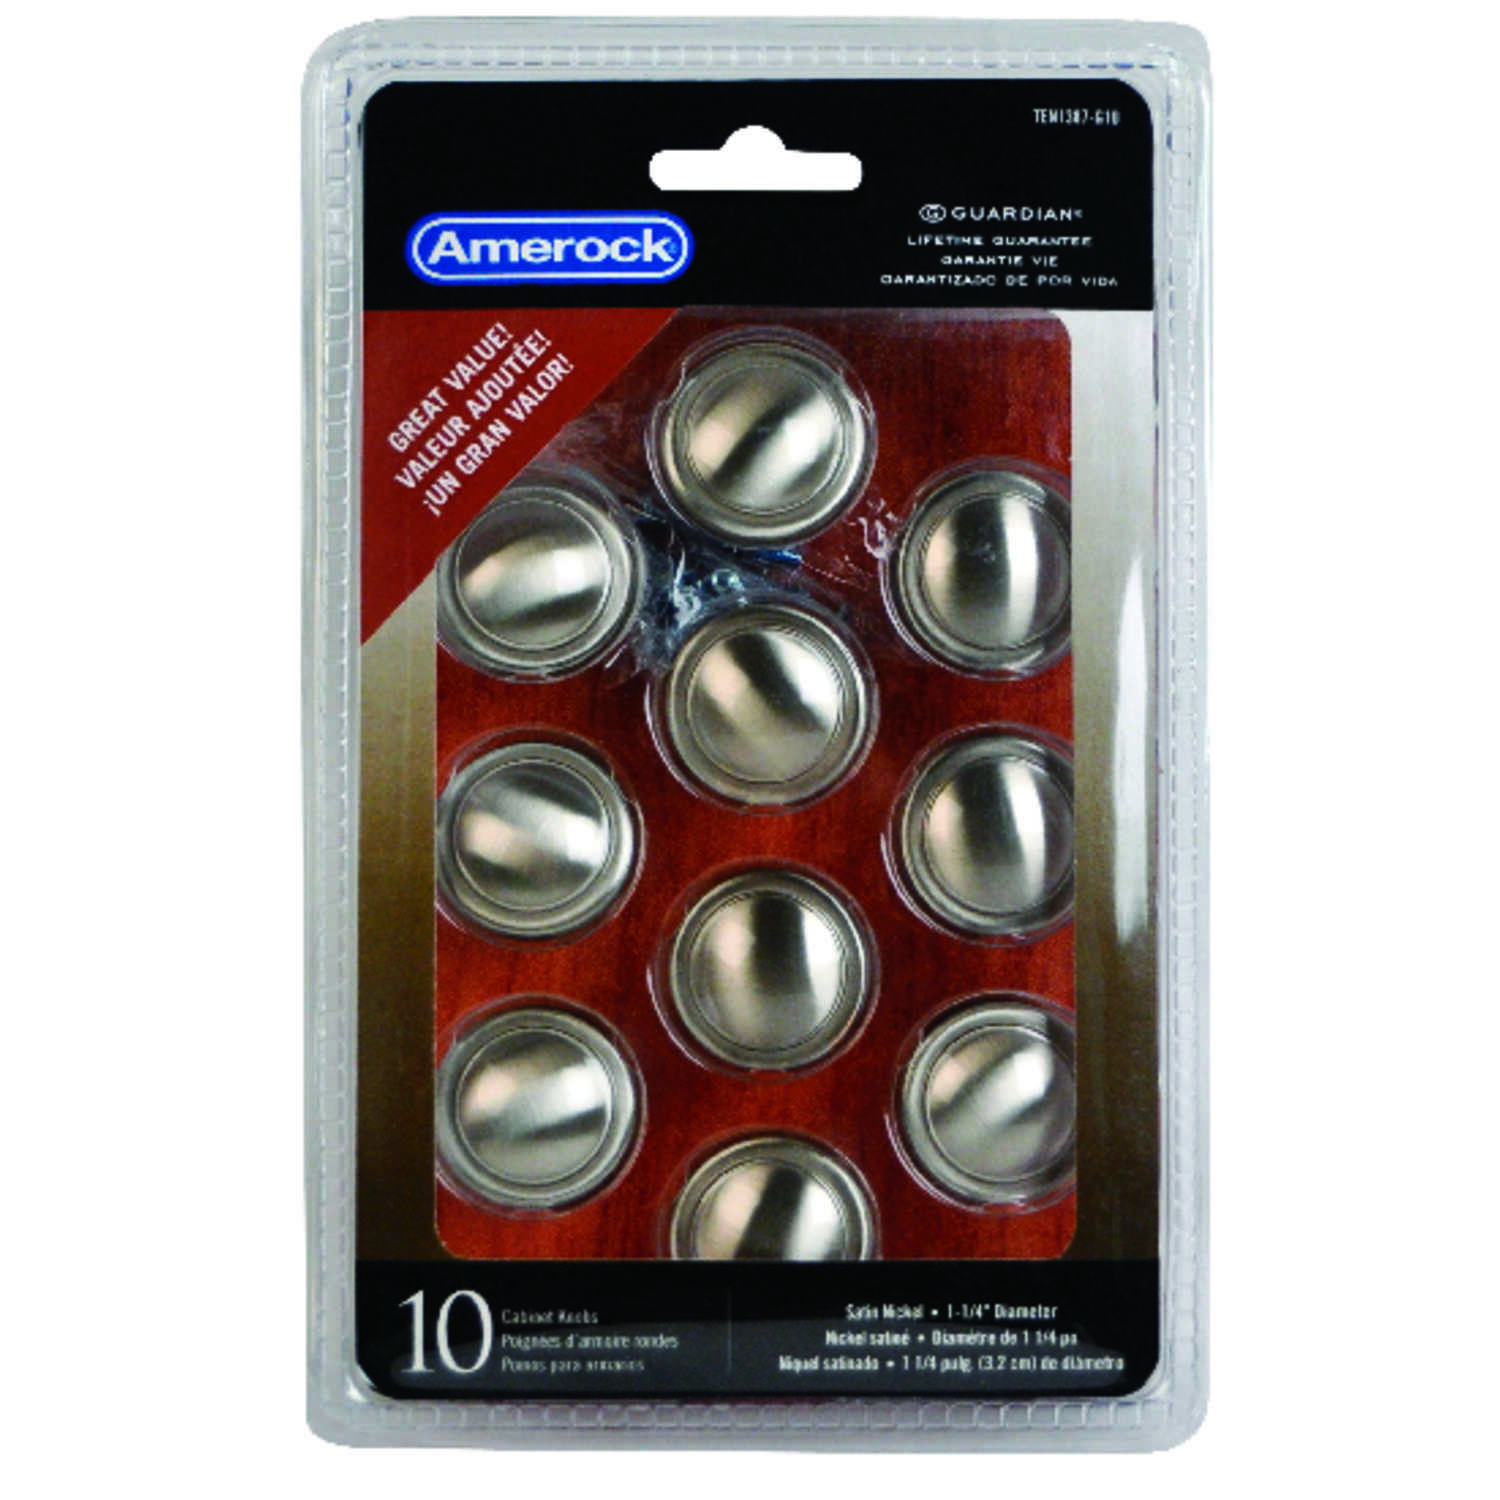 Amerock  Allison  Round  Cabinet Knob  1-1/4 in. Dia. 1-1/16 in. Satin Nickel  10 pk